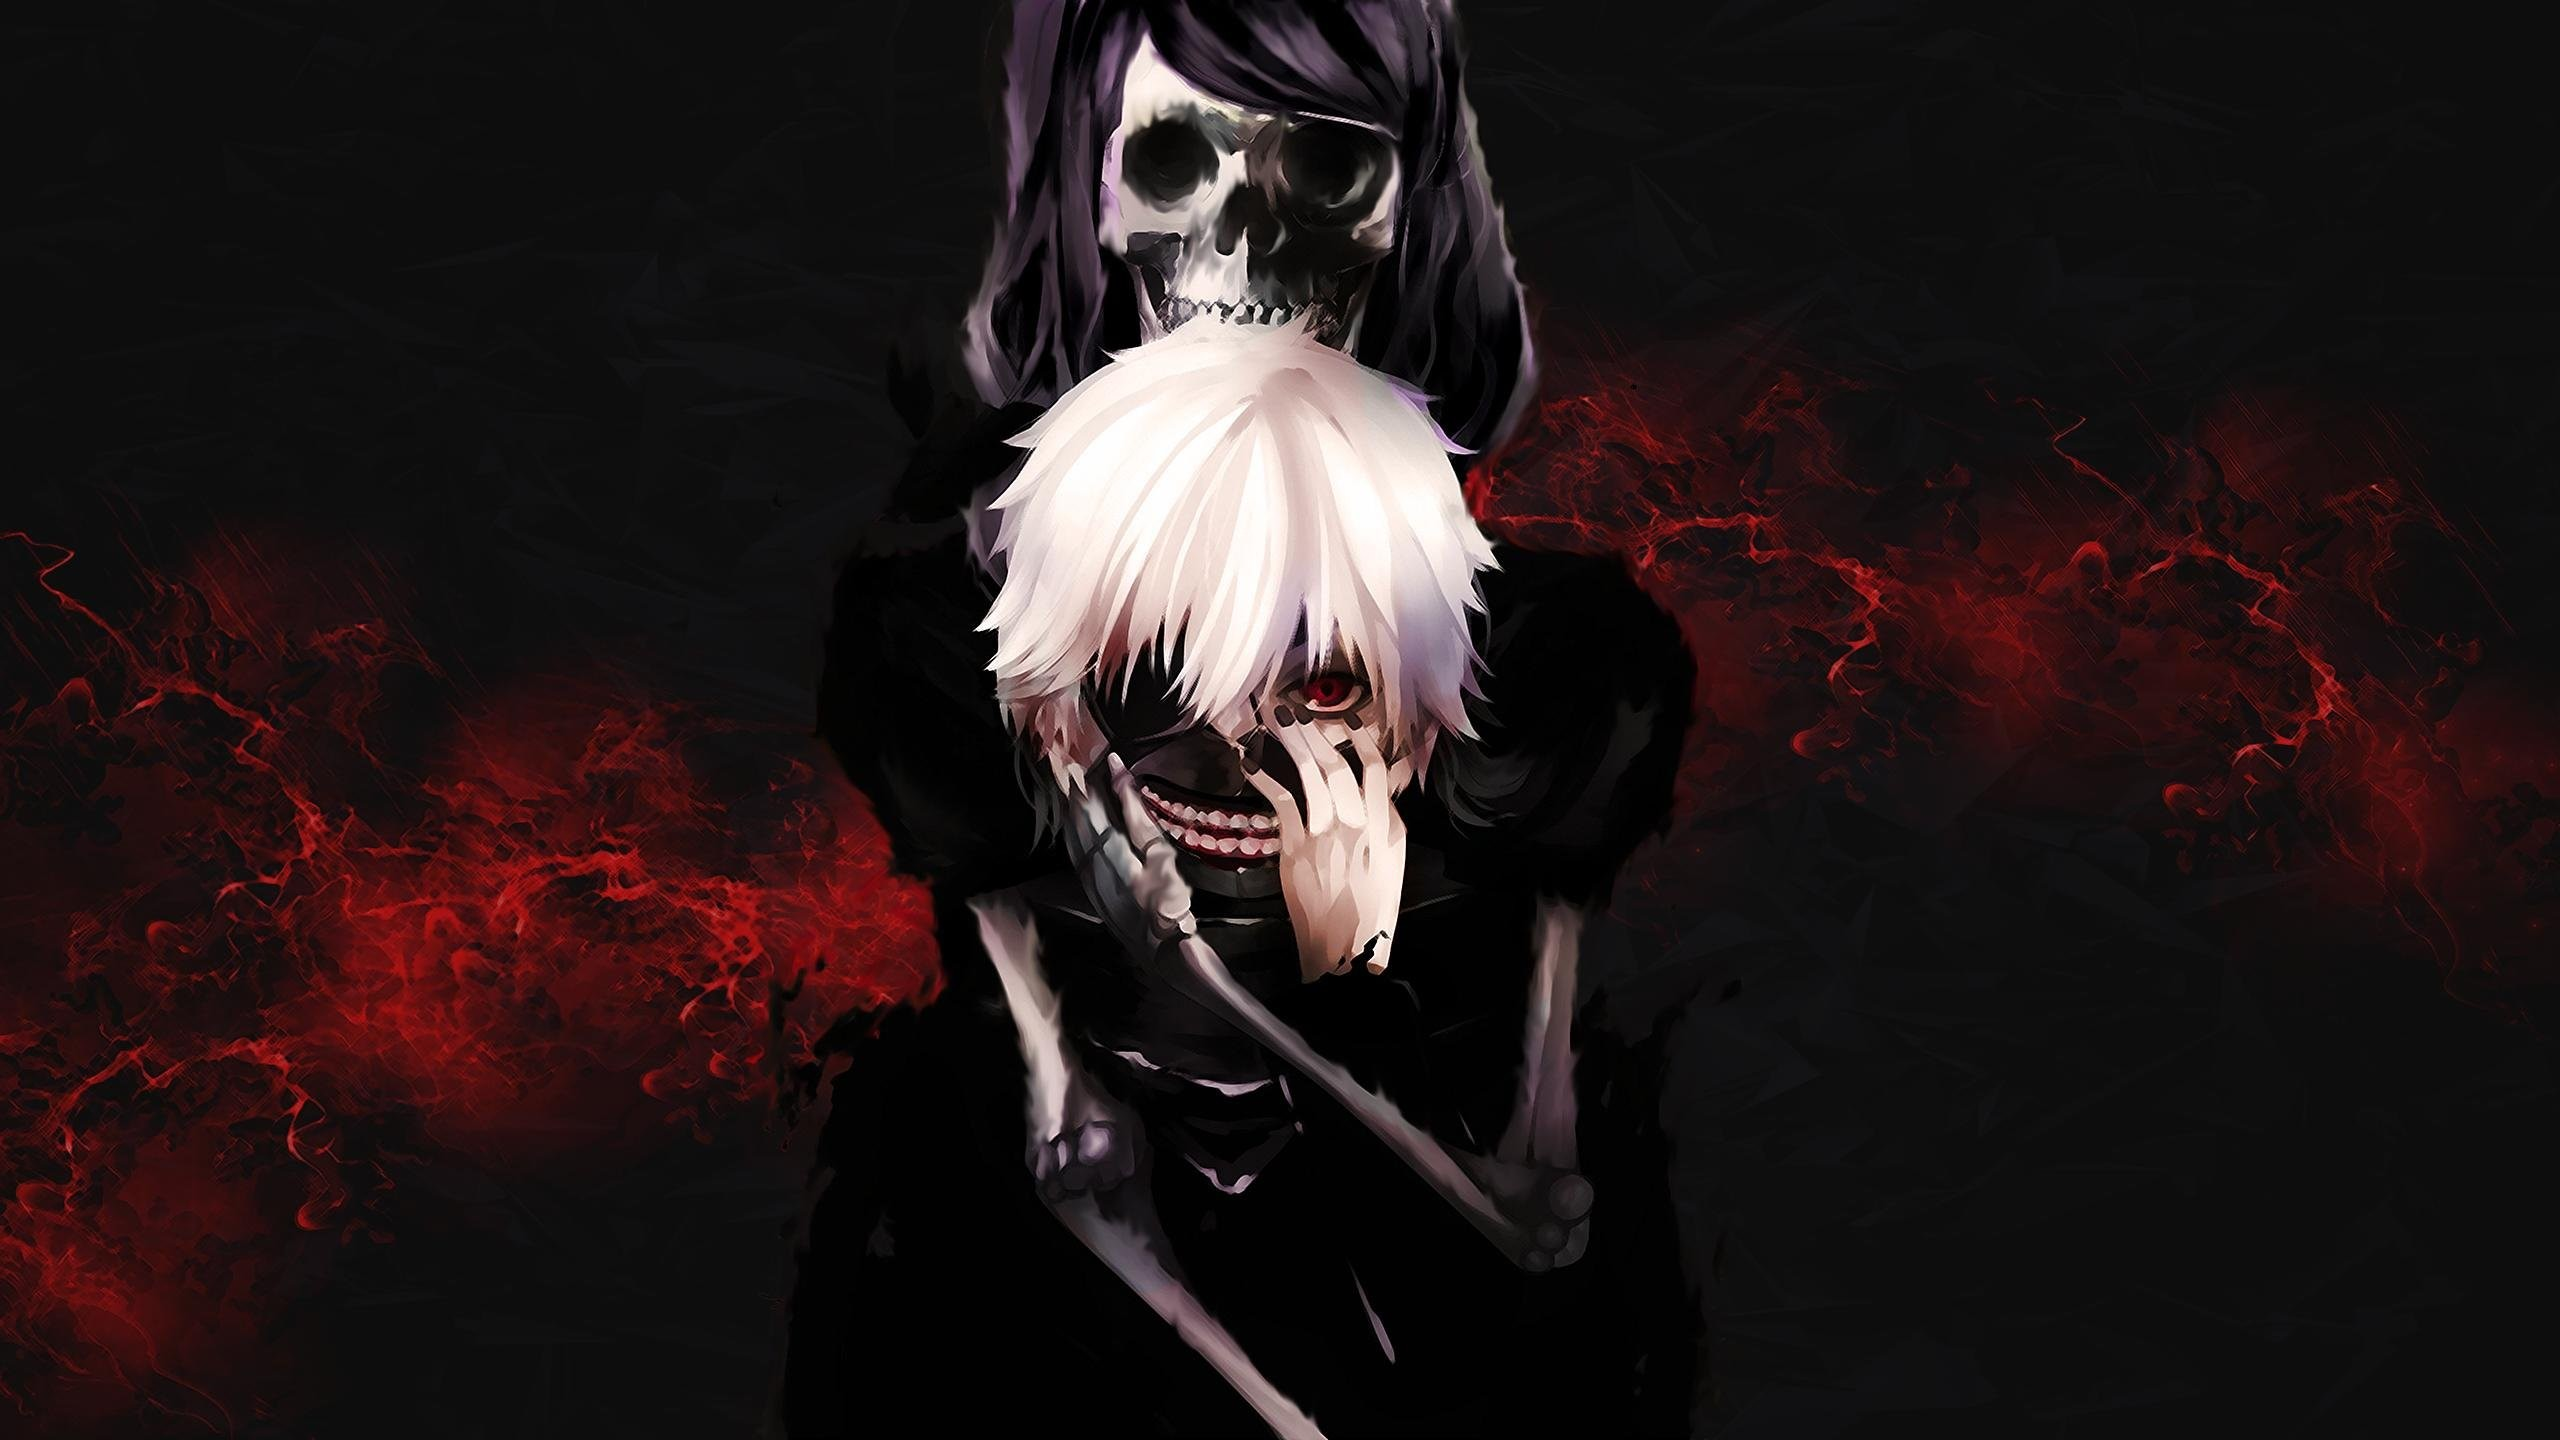 Tokyo ghoul kaneki wallpaper 73 images - Anime background for youtube ...